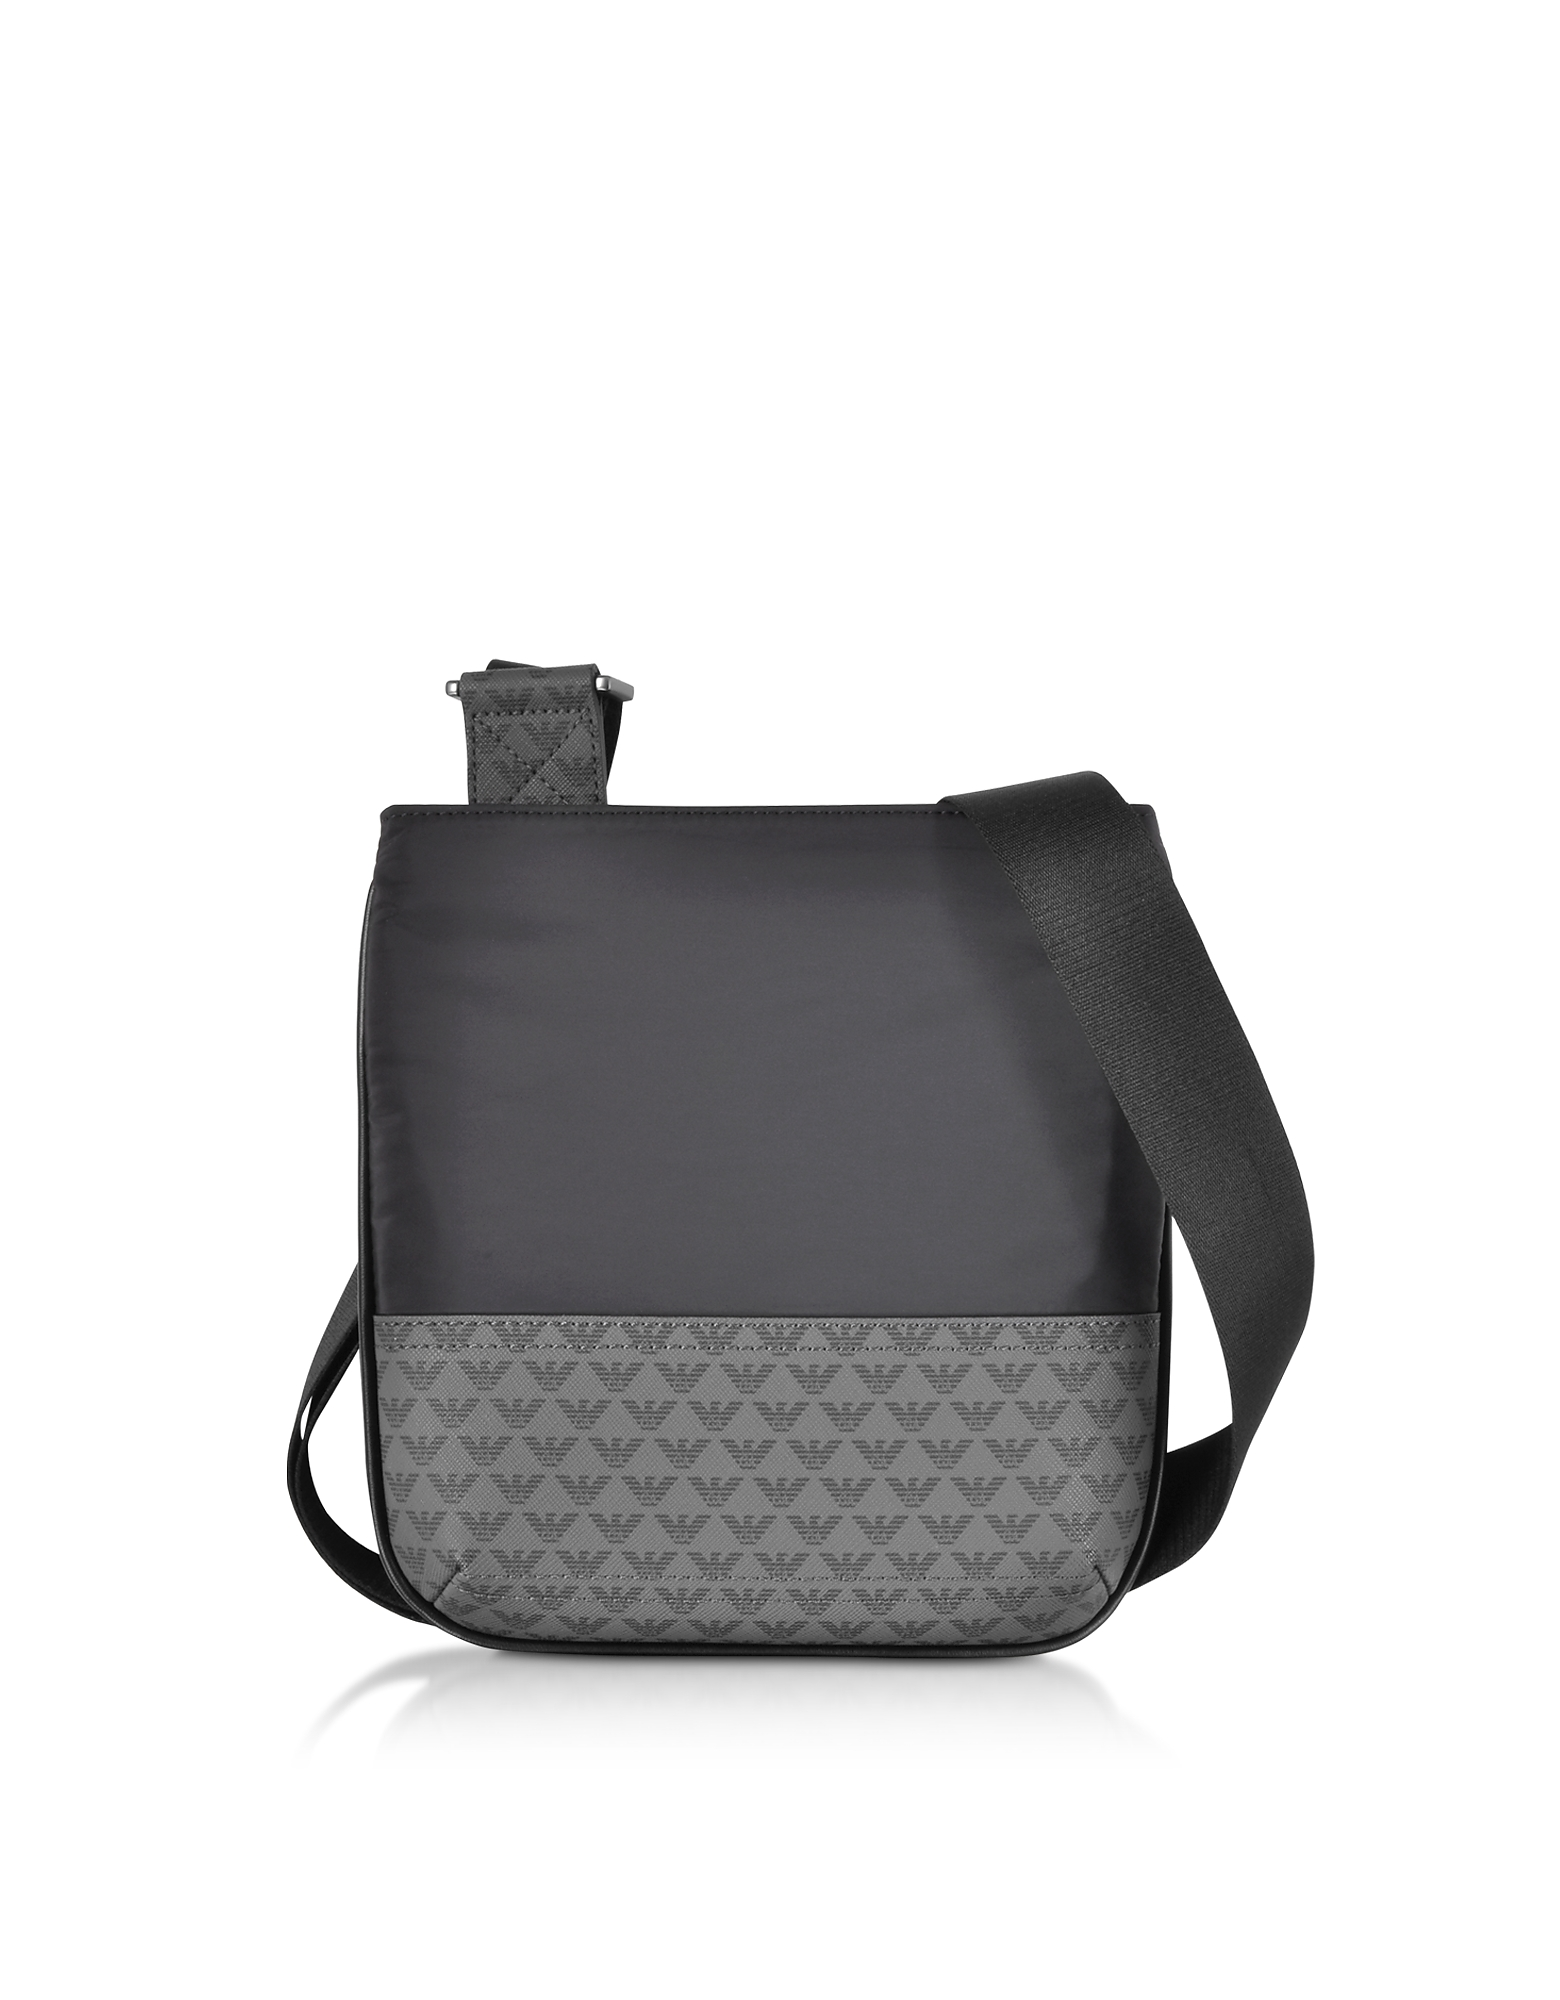 Two Tone Signature Men's Crossbody Bag